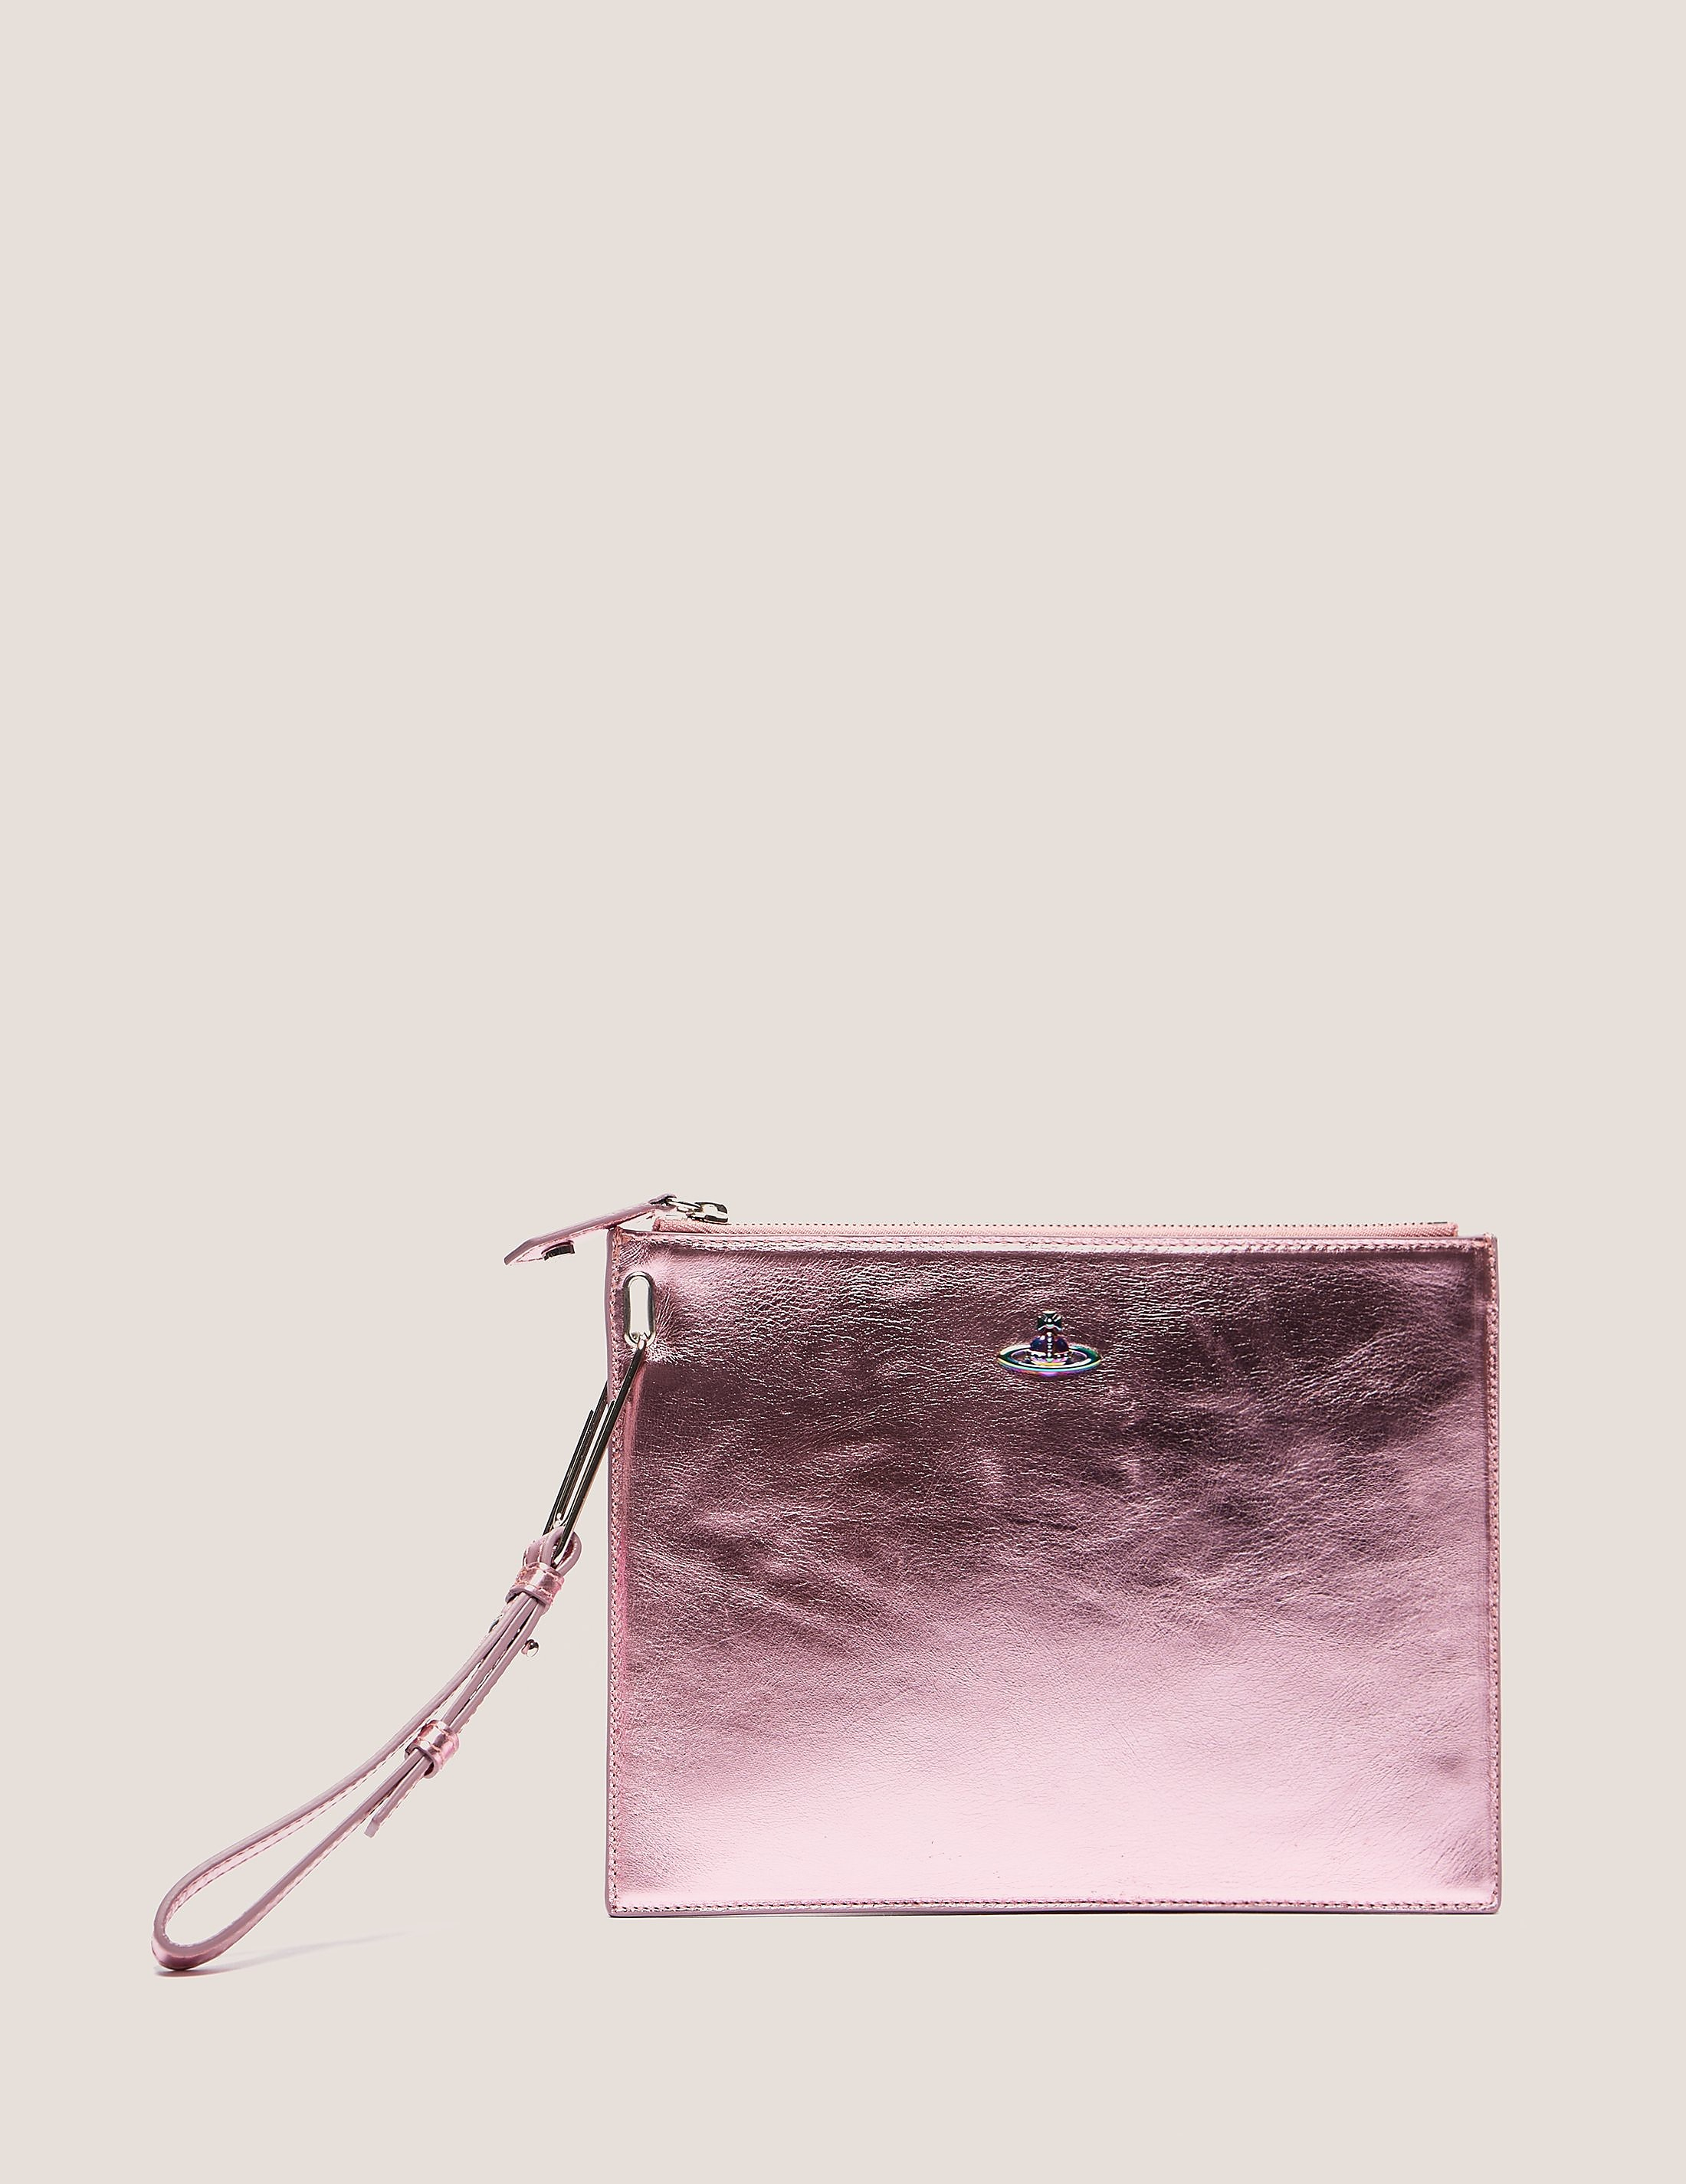 Vivienne Westwood Venice Clutch Bag - Online Exclusive